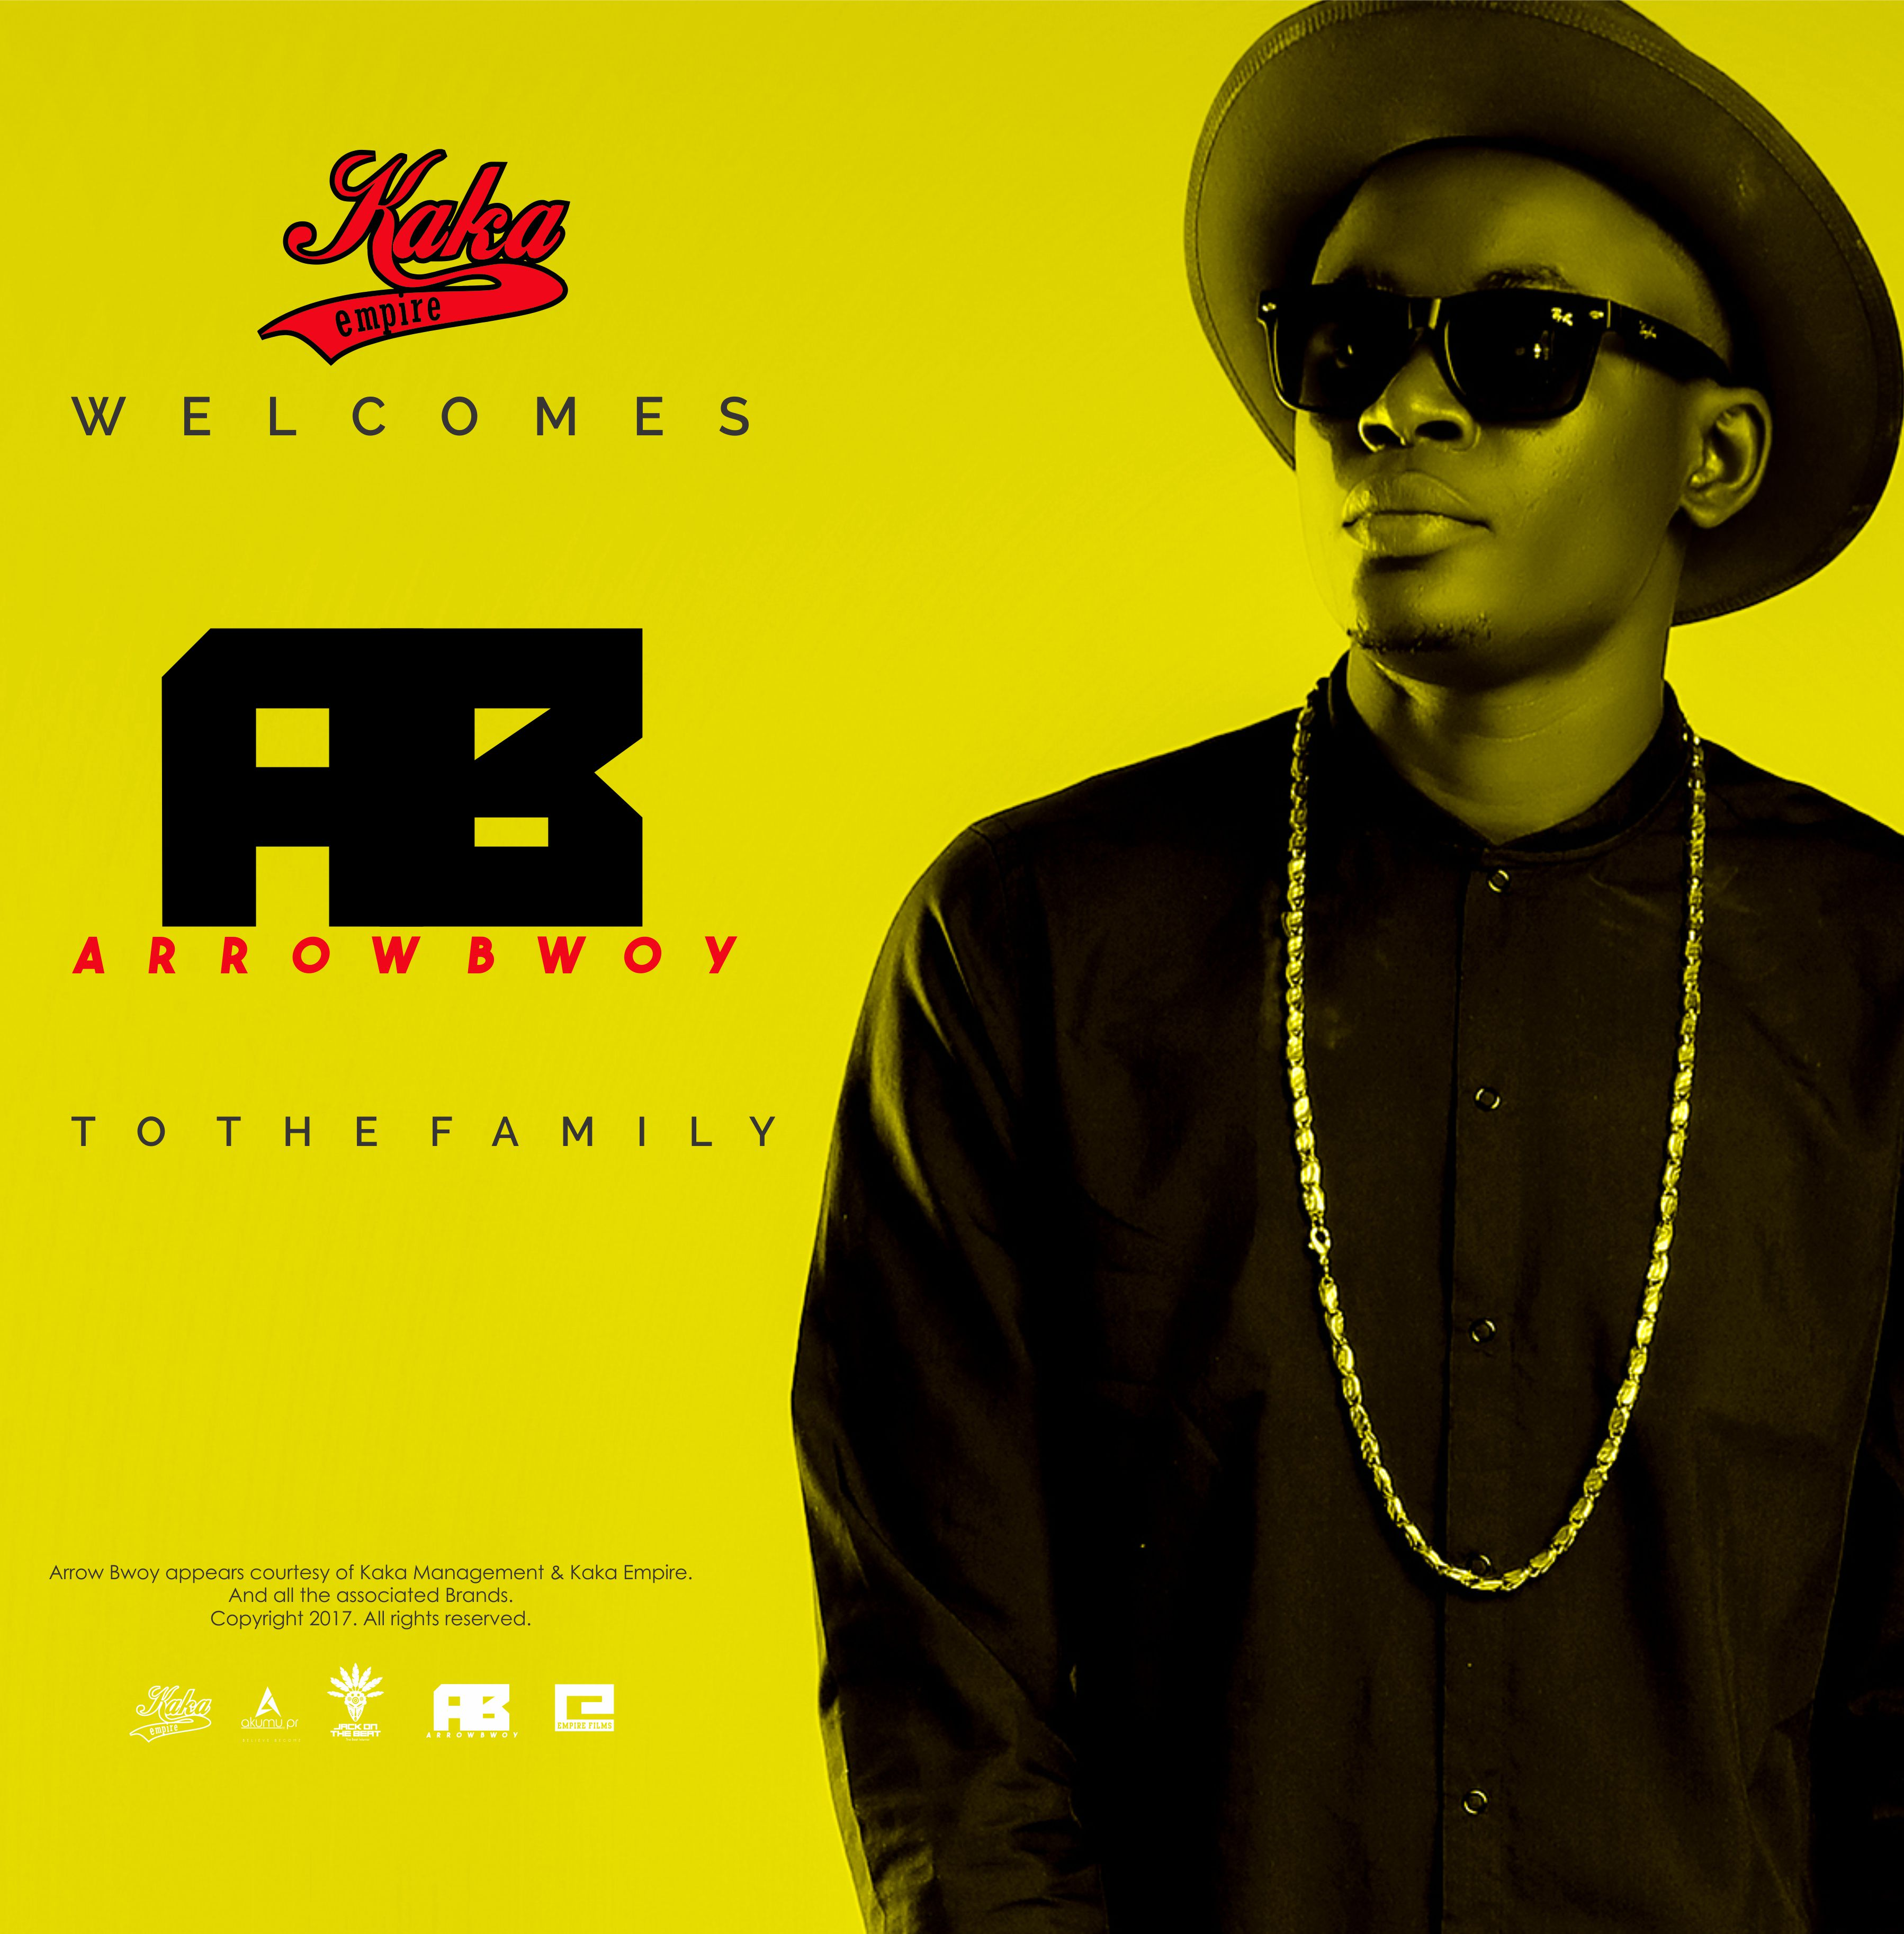 Arrow Bwoy Welcome Poster